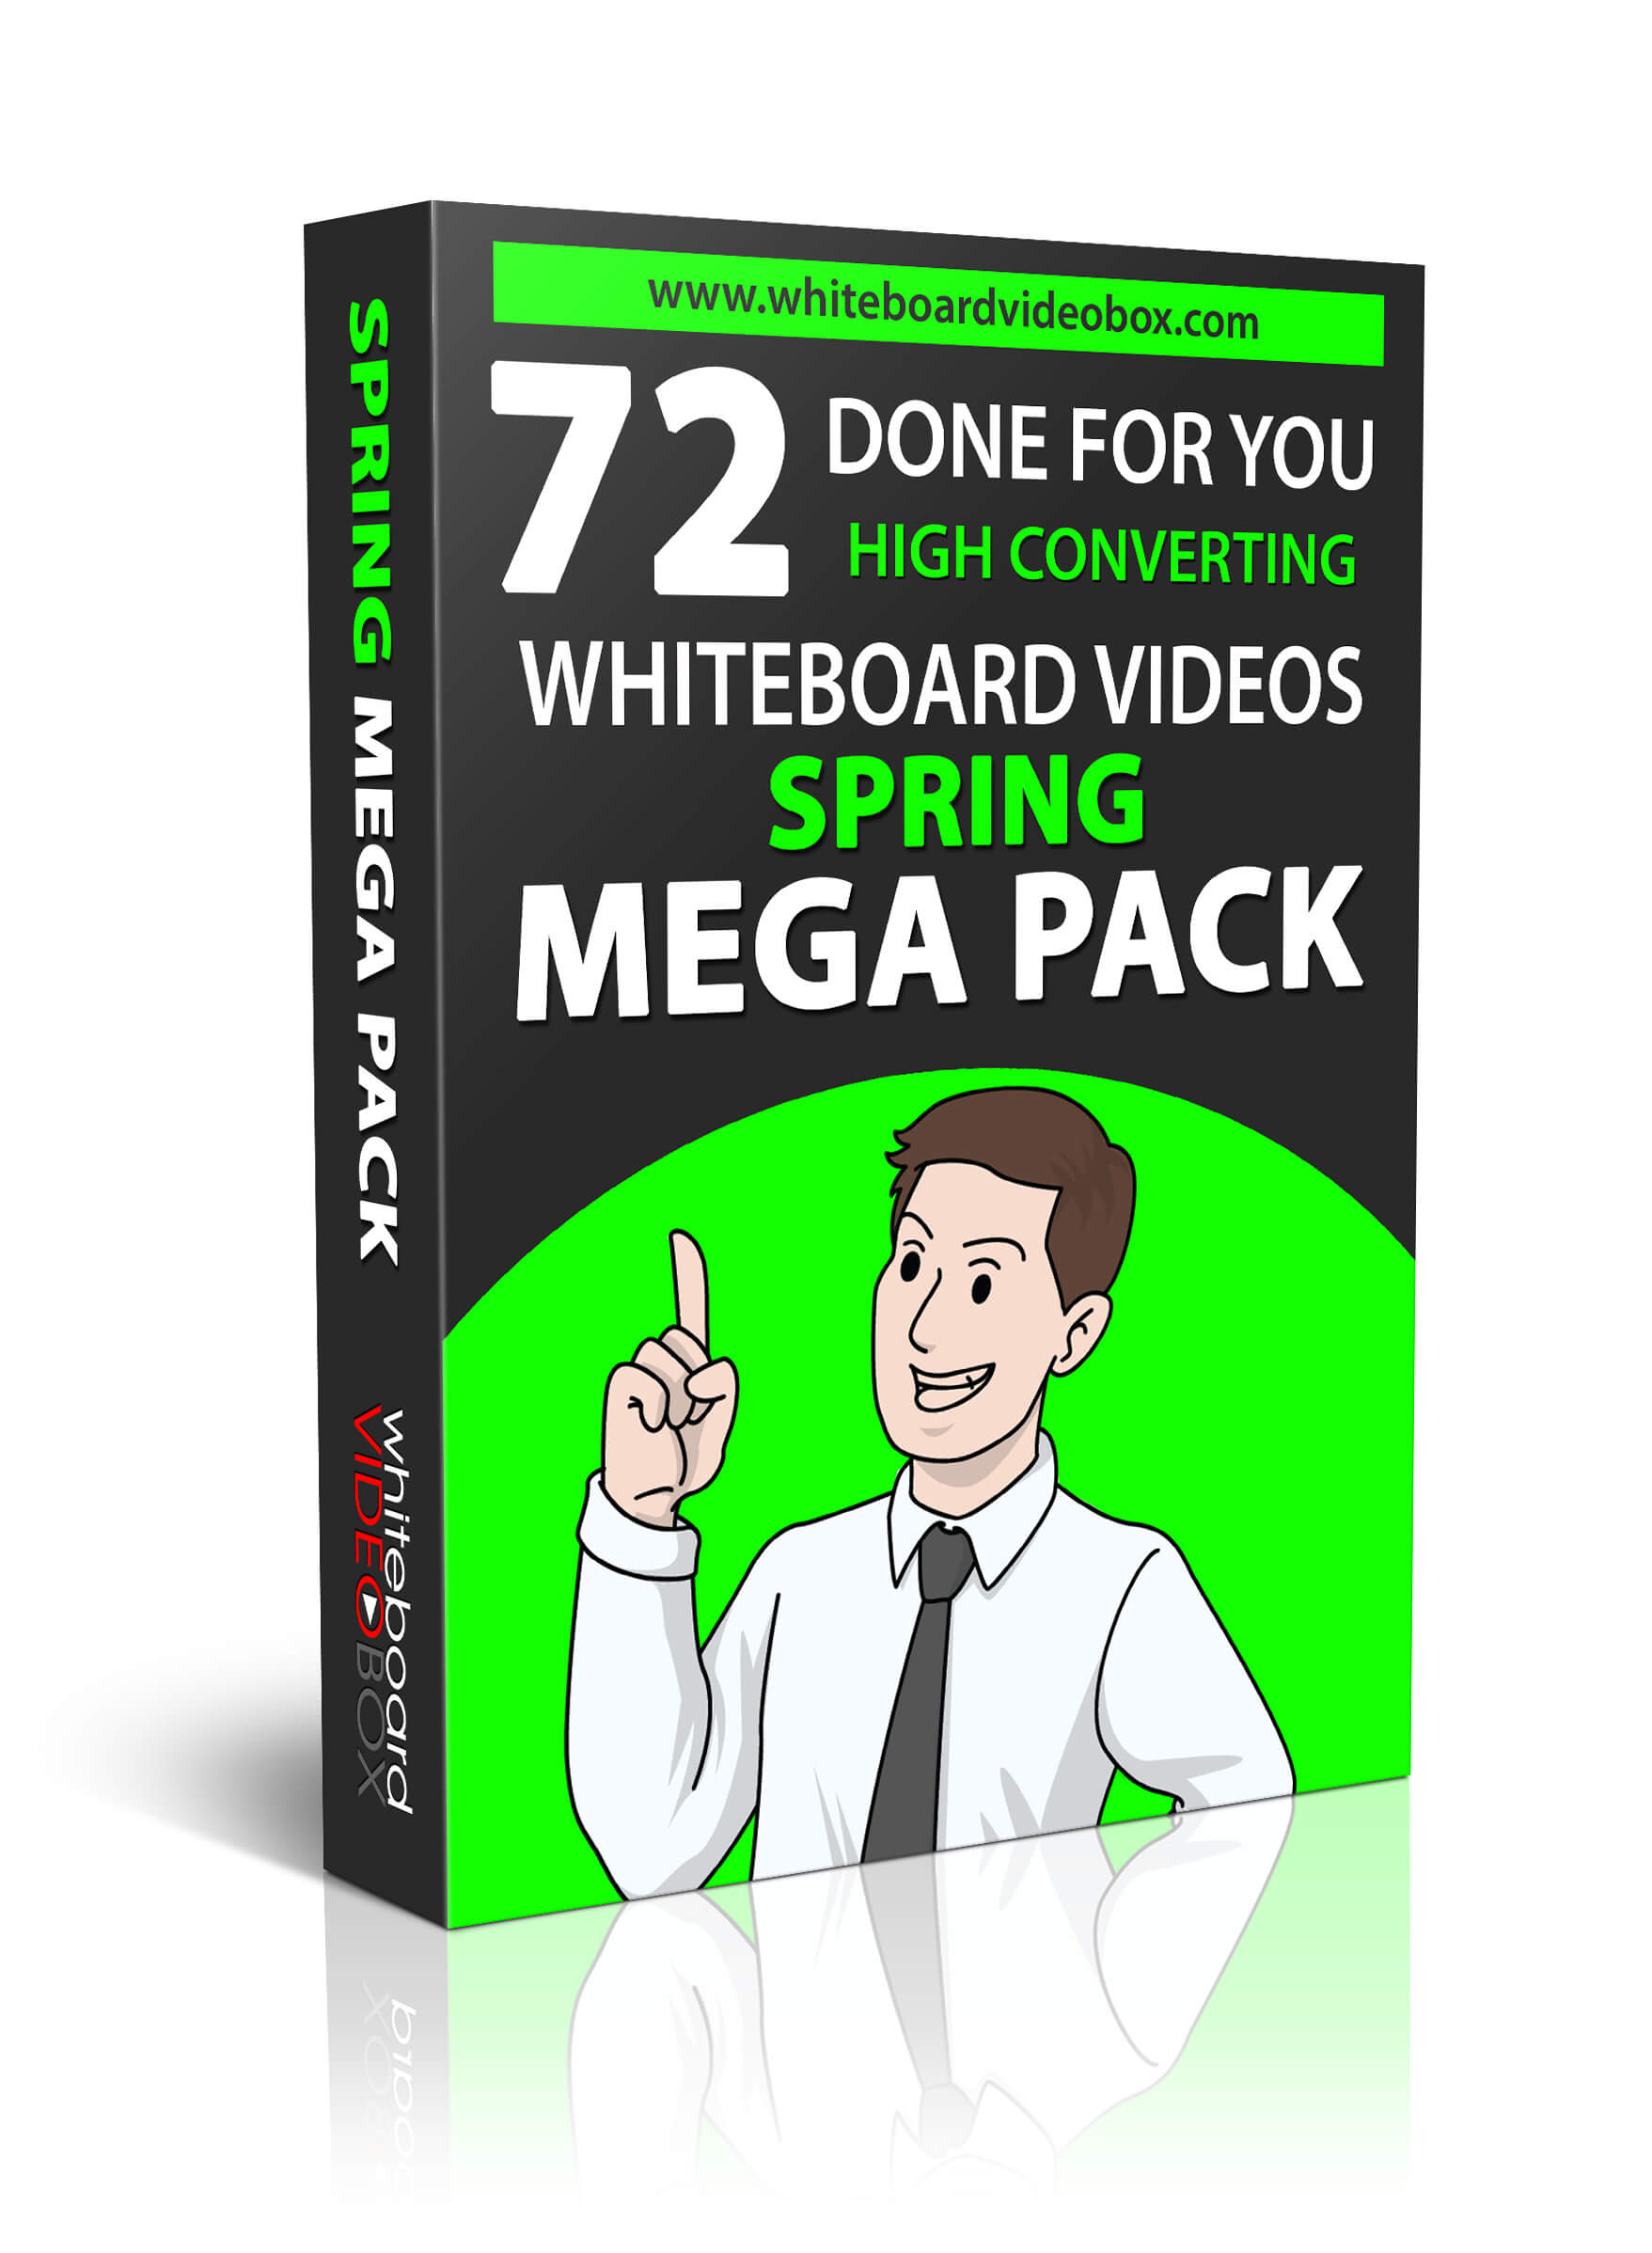 Whiteboard Video - Spring Mega Pack Review